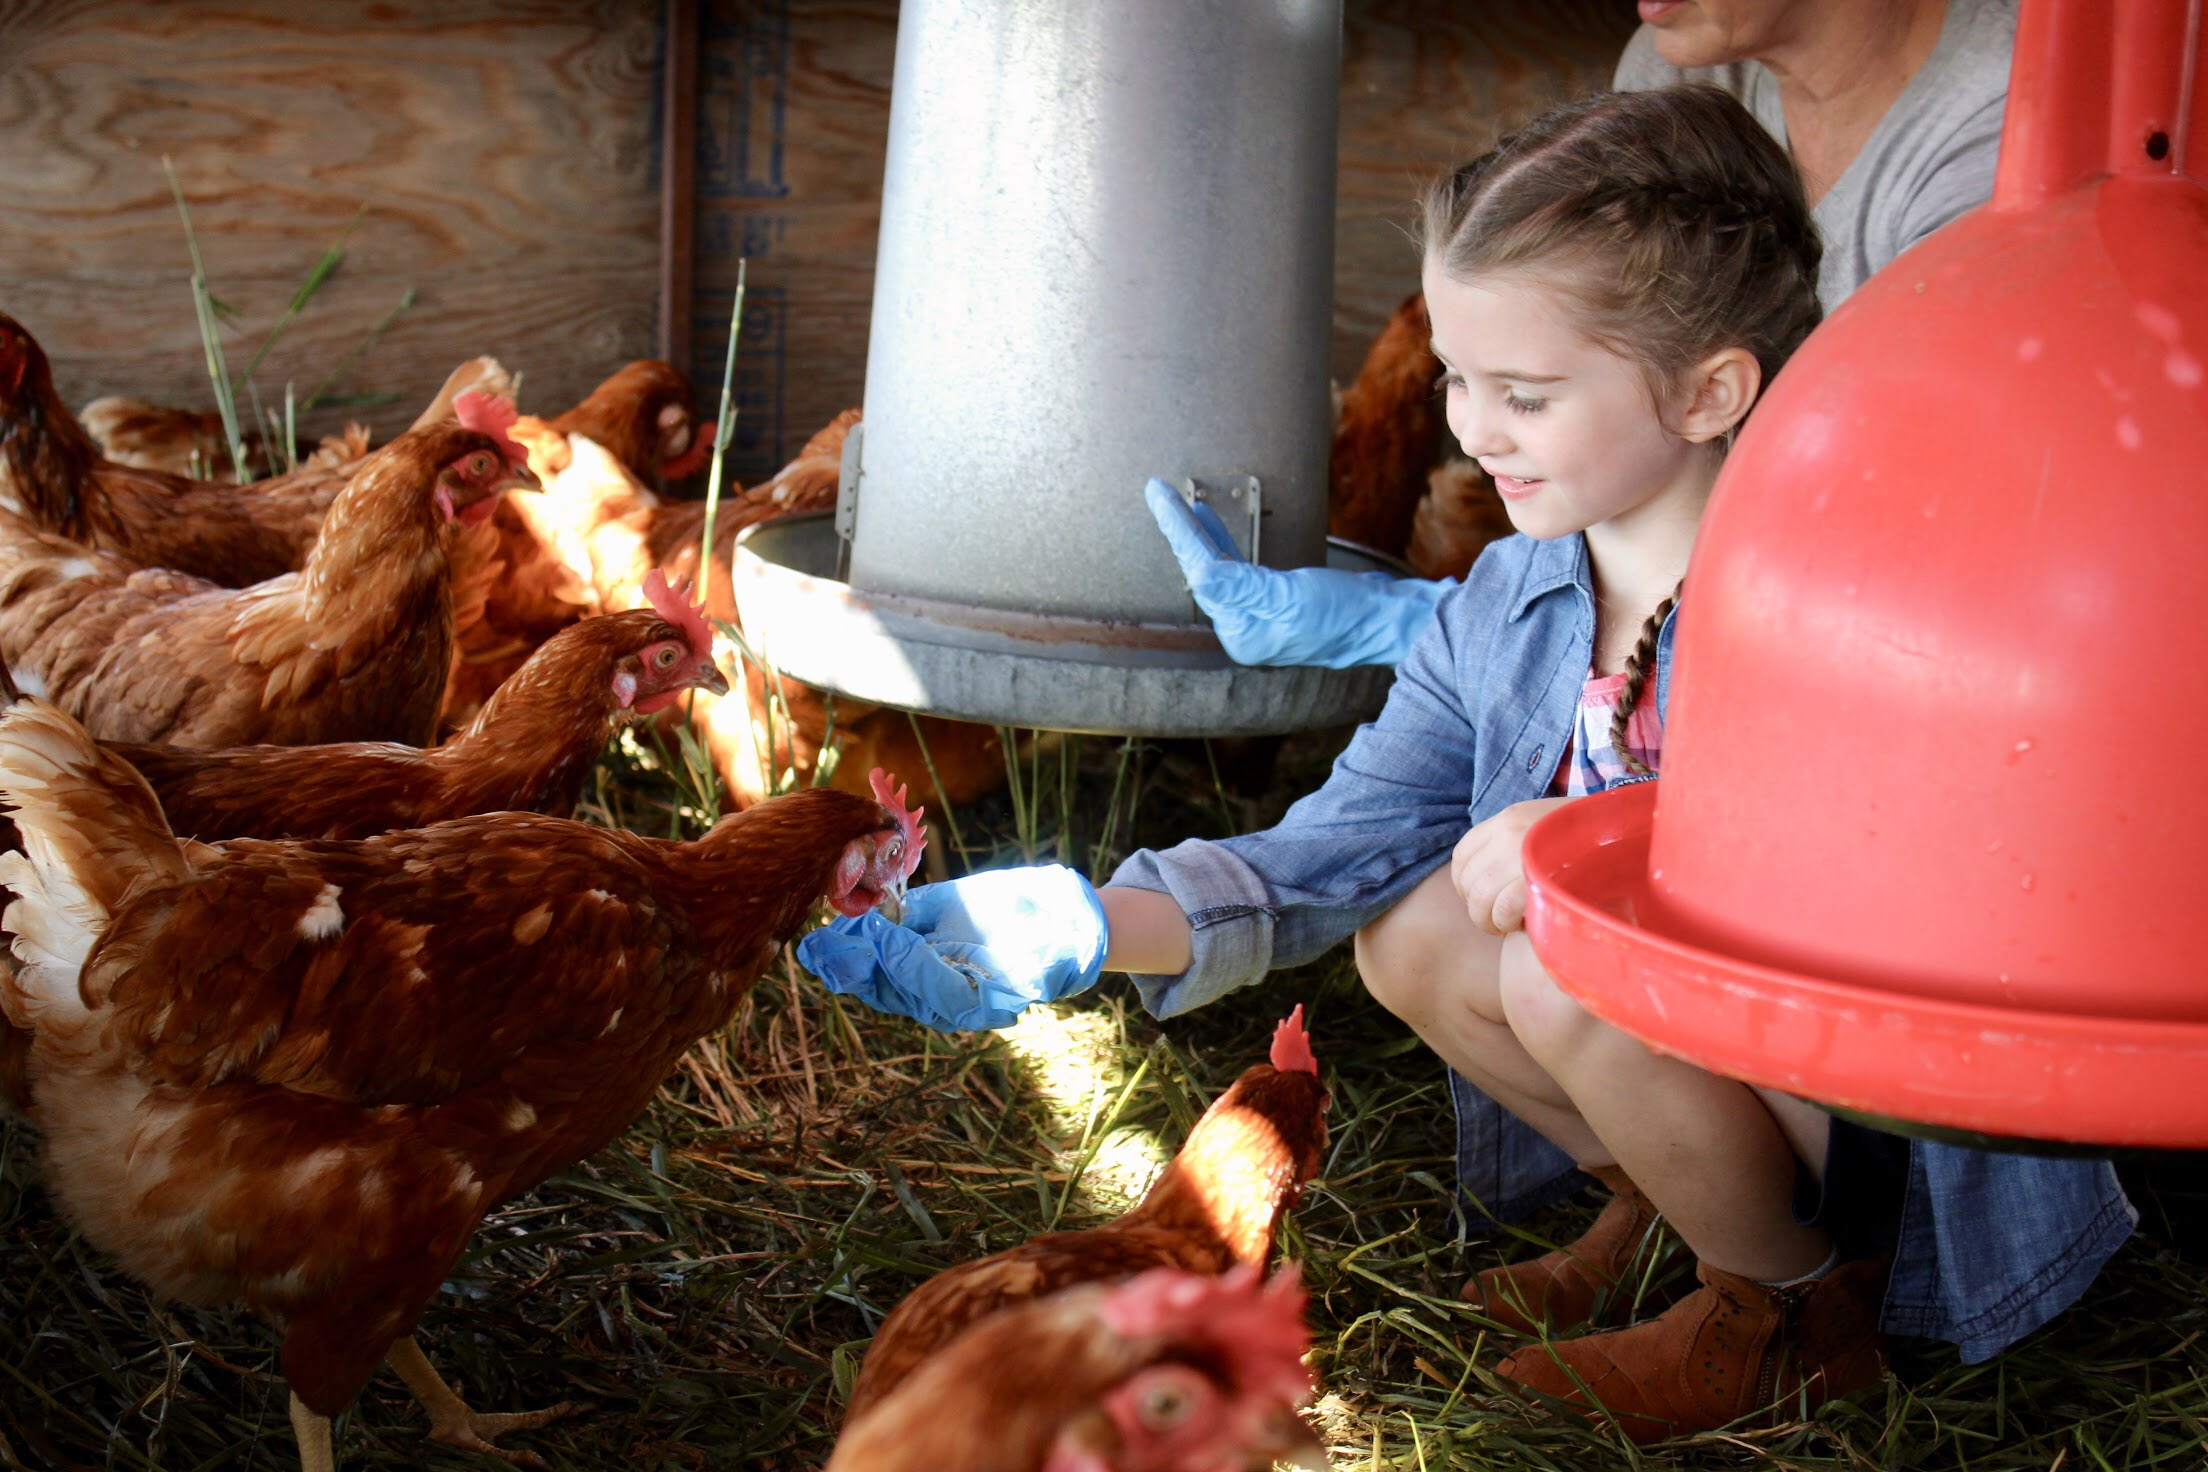 Sunworks Farm: Home to Happy Hens